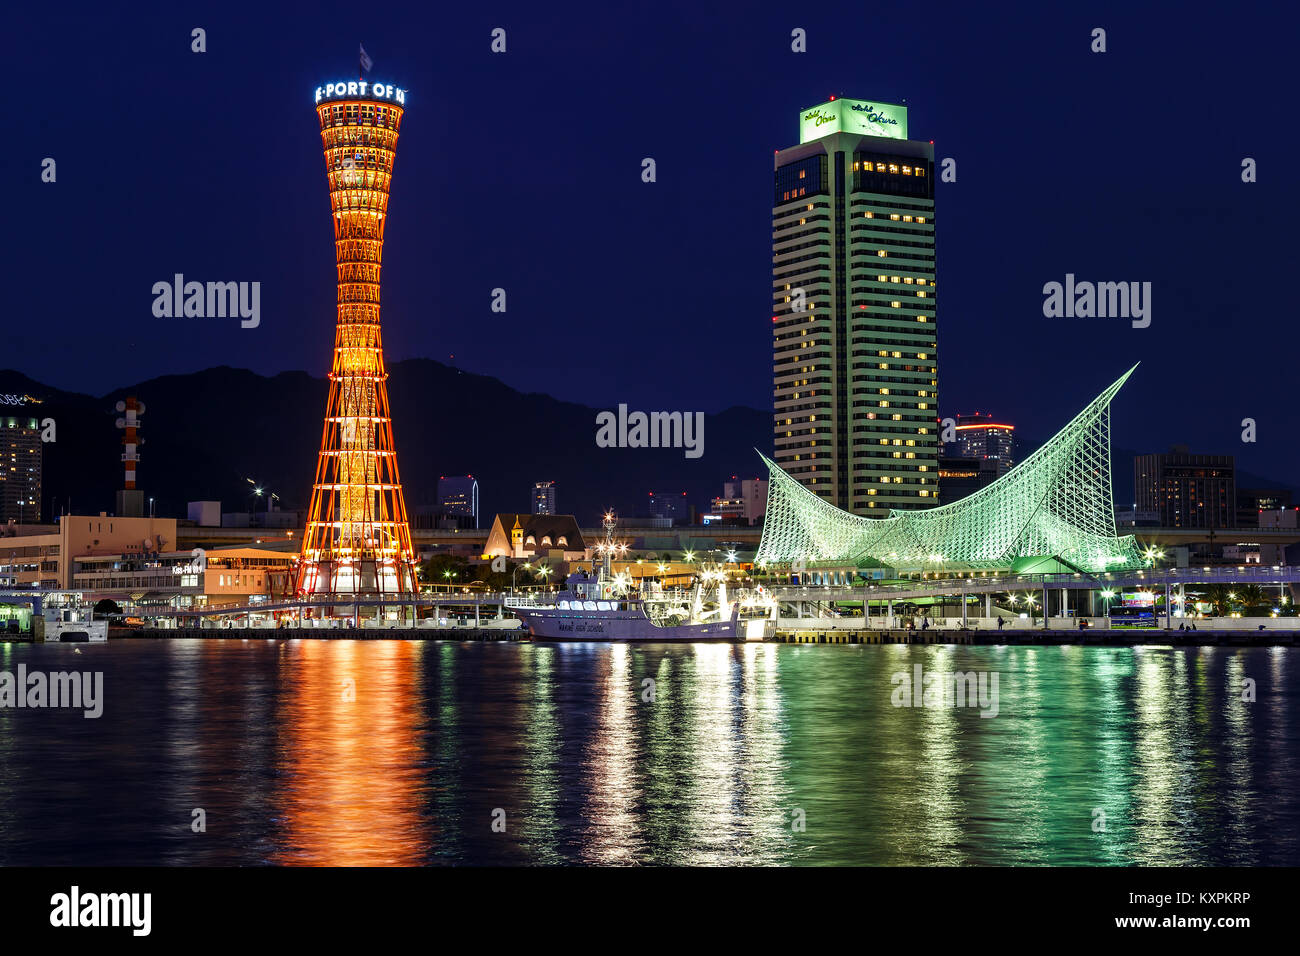 Port of Kobe with Kobe Port Tower  KOBE, JAPAN - OCTOBER 26:  Port of Kobe in Kobe, Japan on October 26, 2014. A - Stock Image